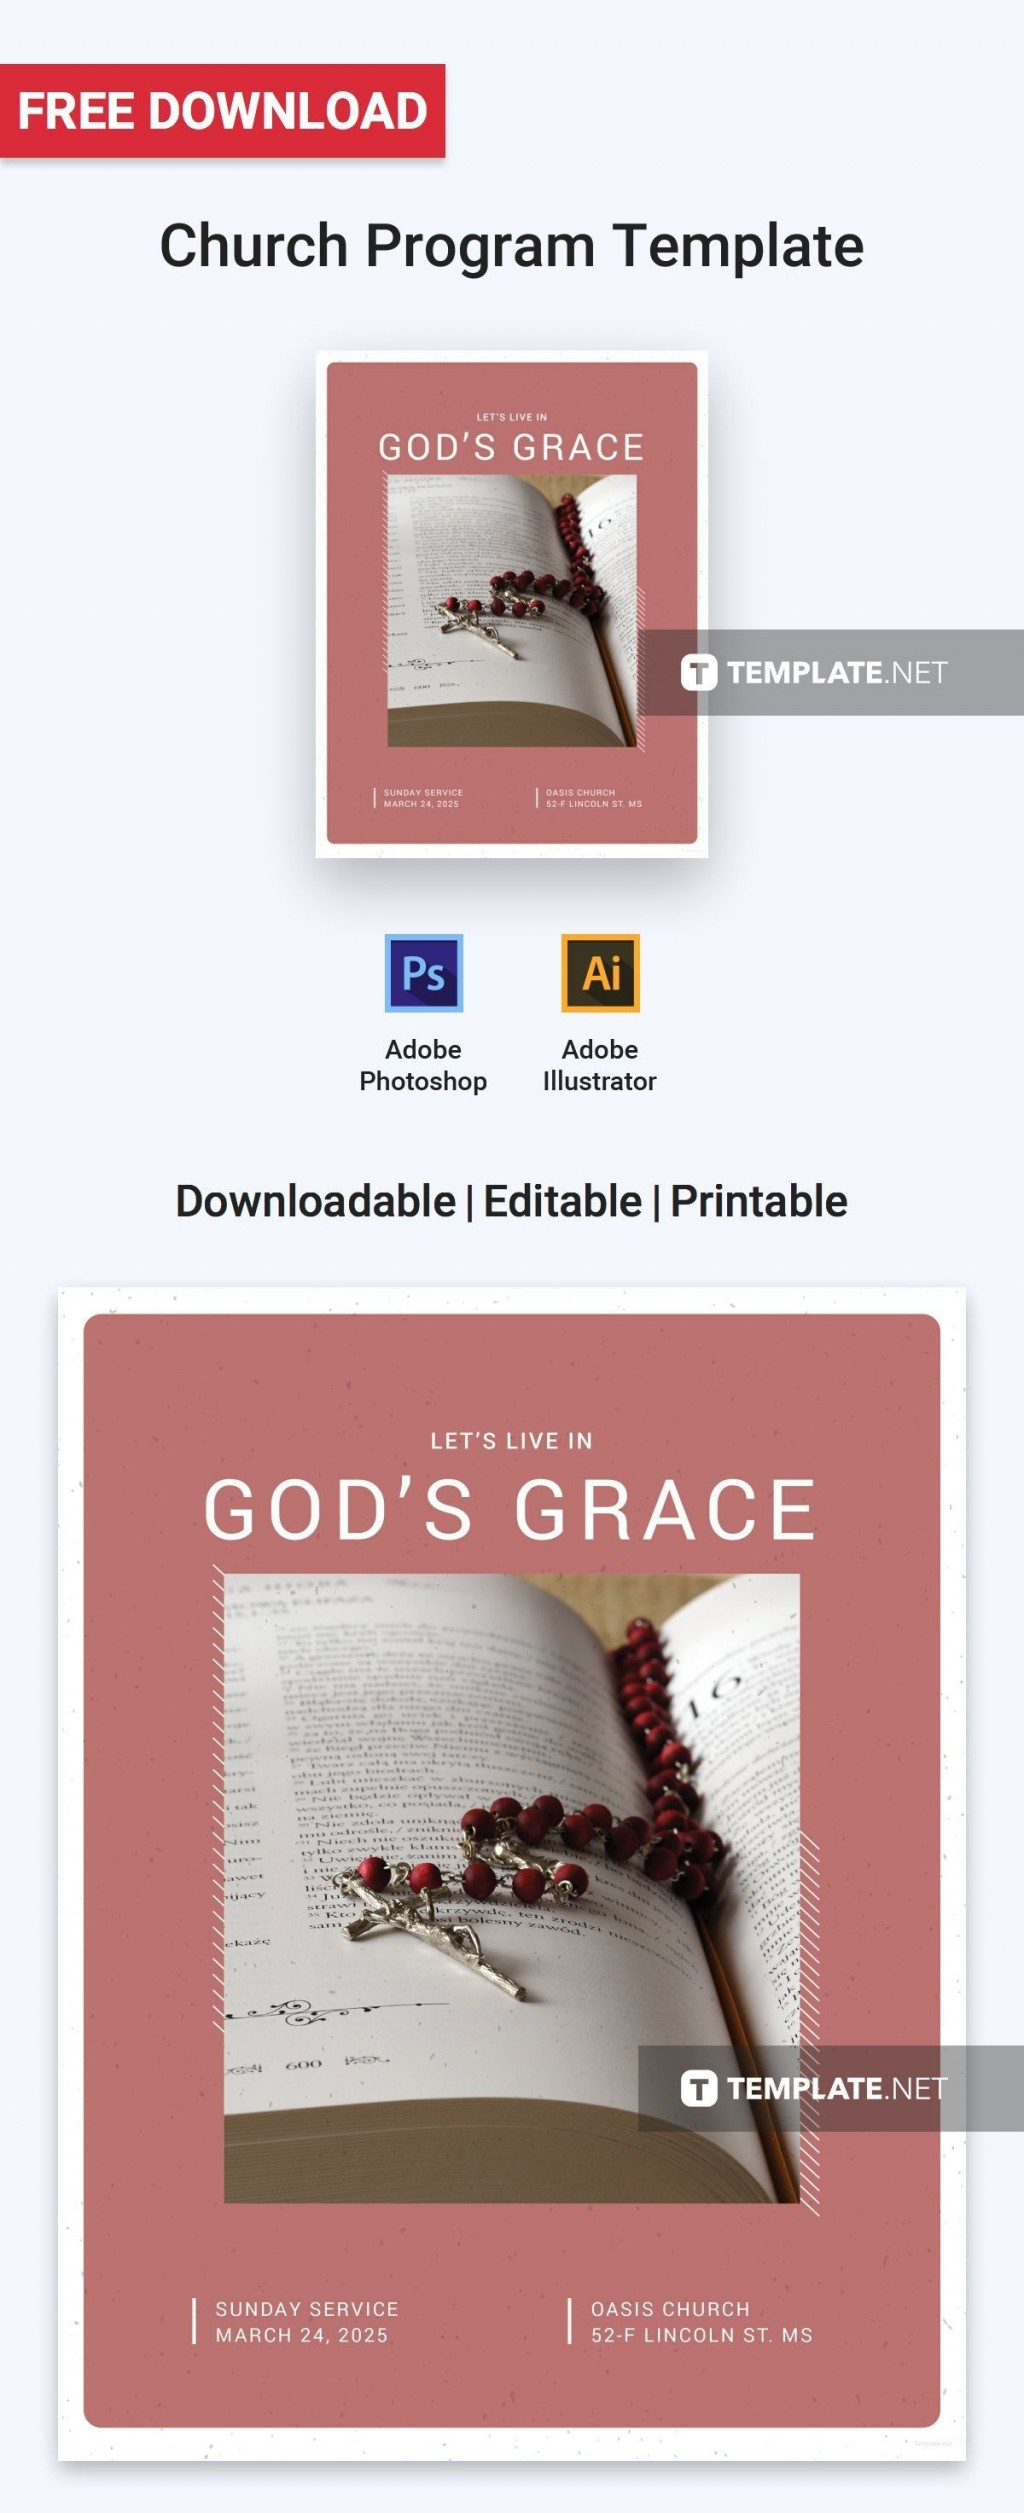 002 Unbelievable Free Church Program Template High Definition  Printable Anniversary DocLarge